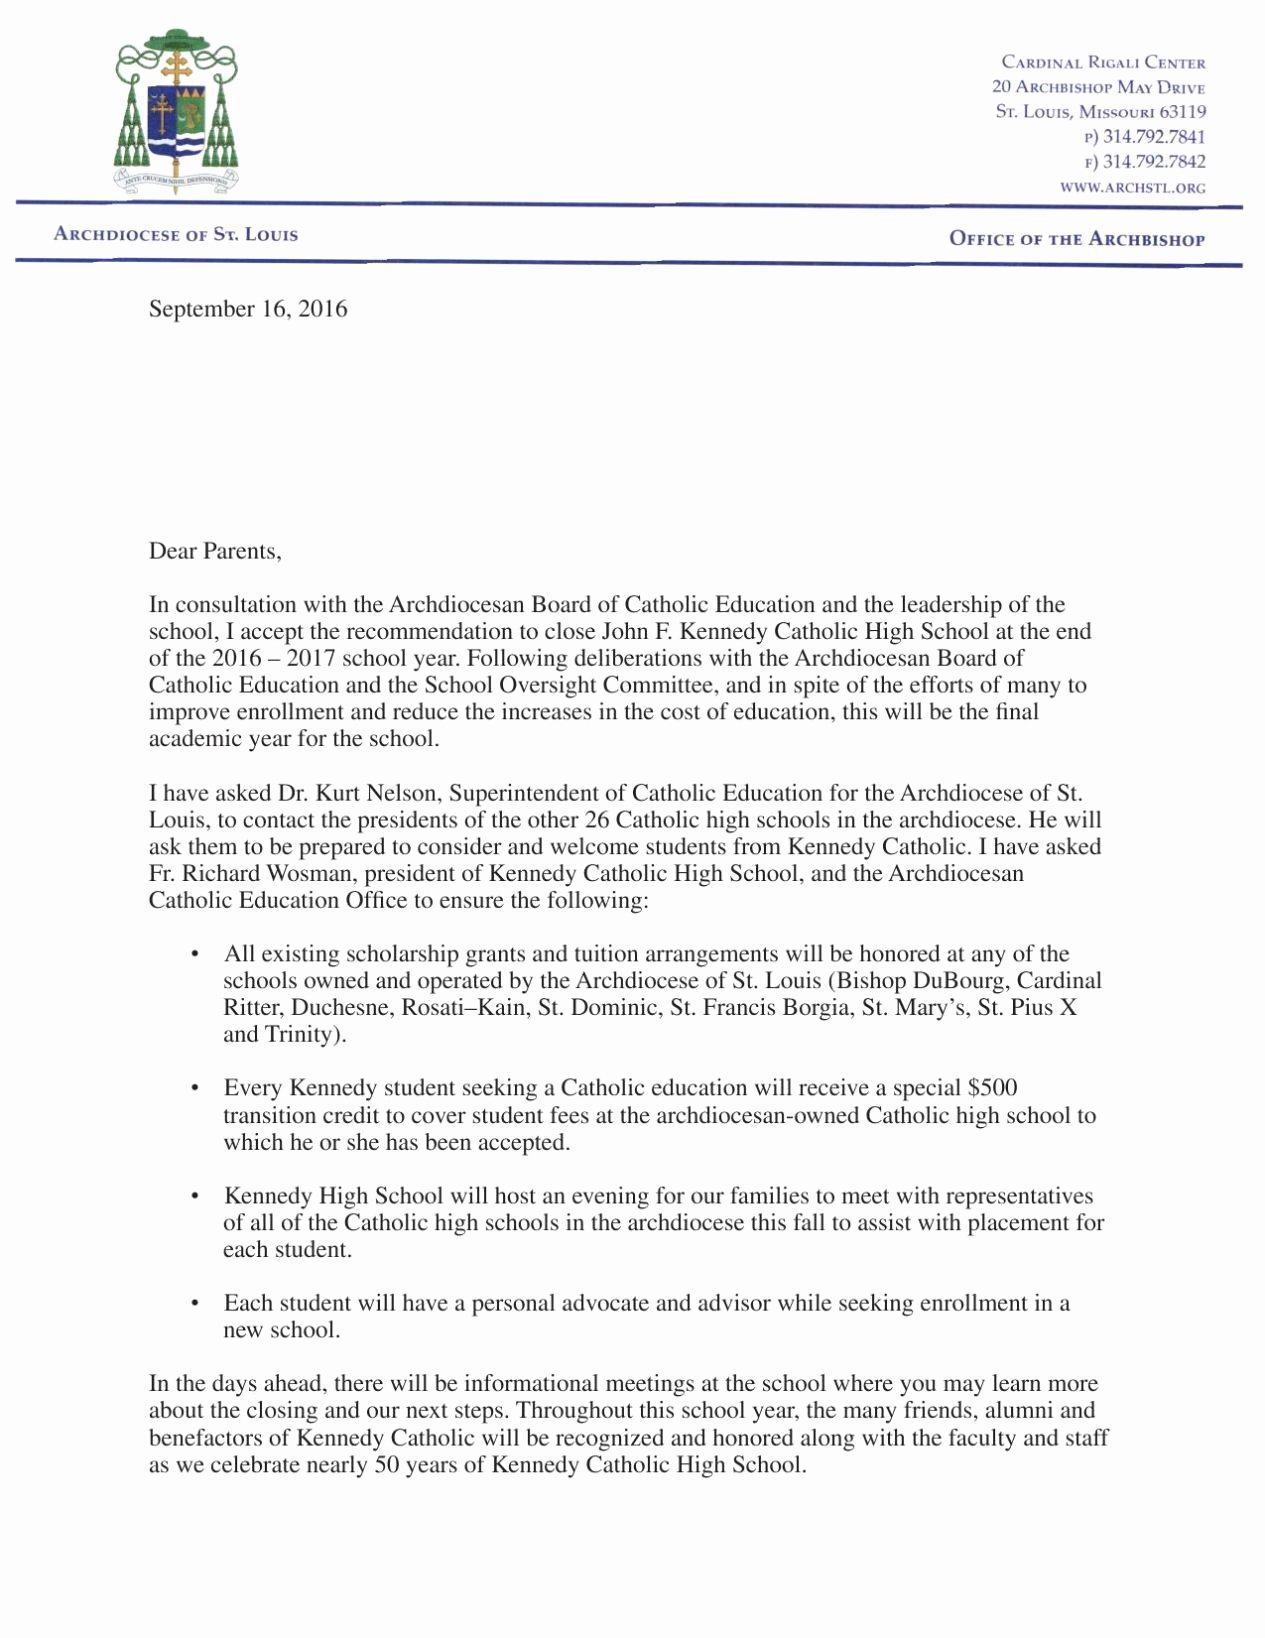 College Recommendation Letter From Alumni Sample New College Letter Of Re Mendation From Alumni thevillas